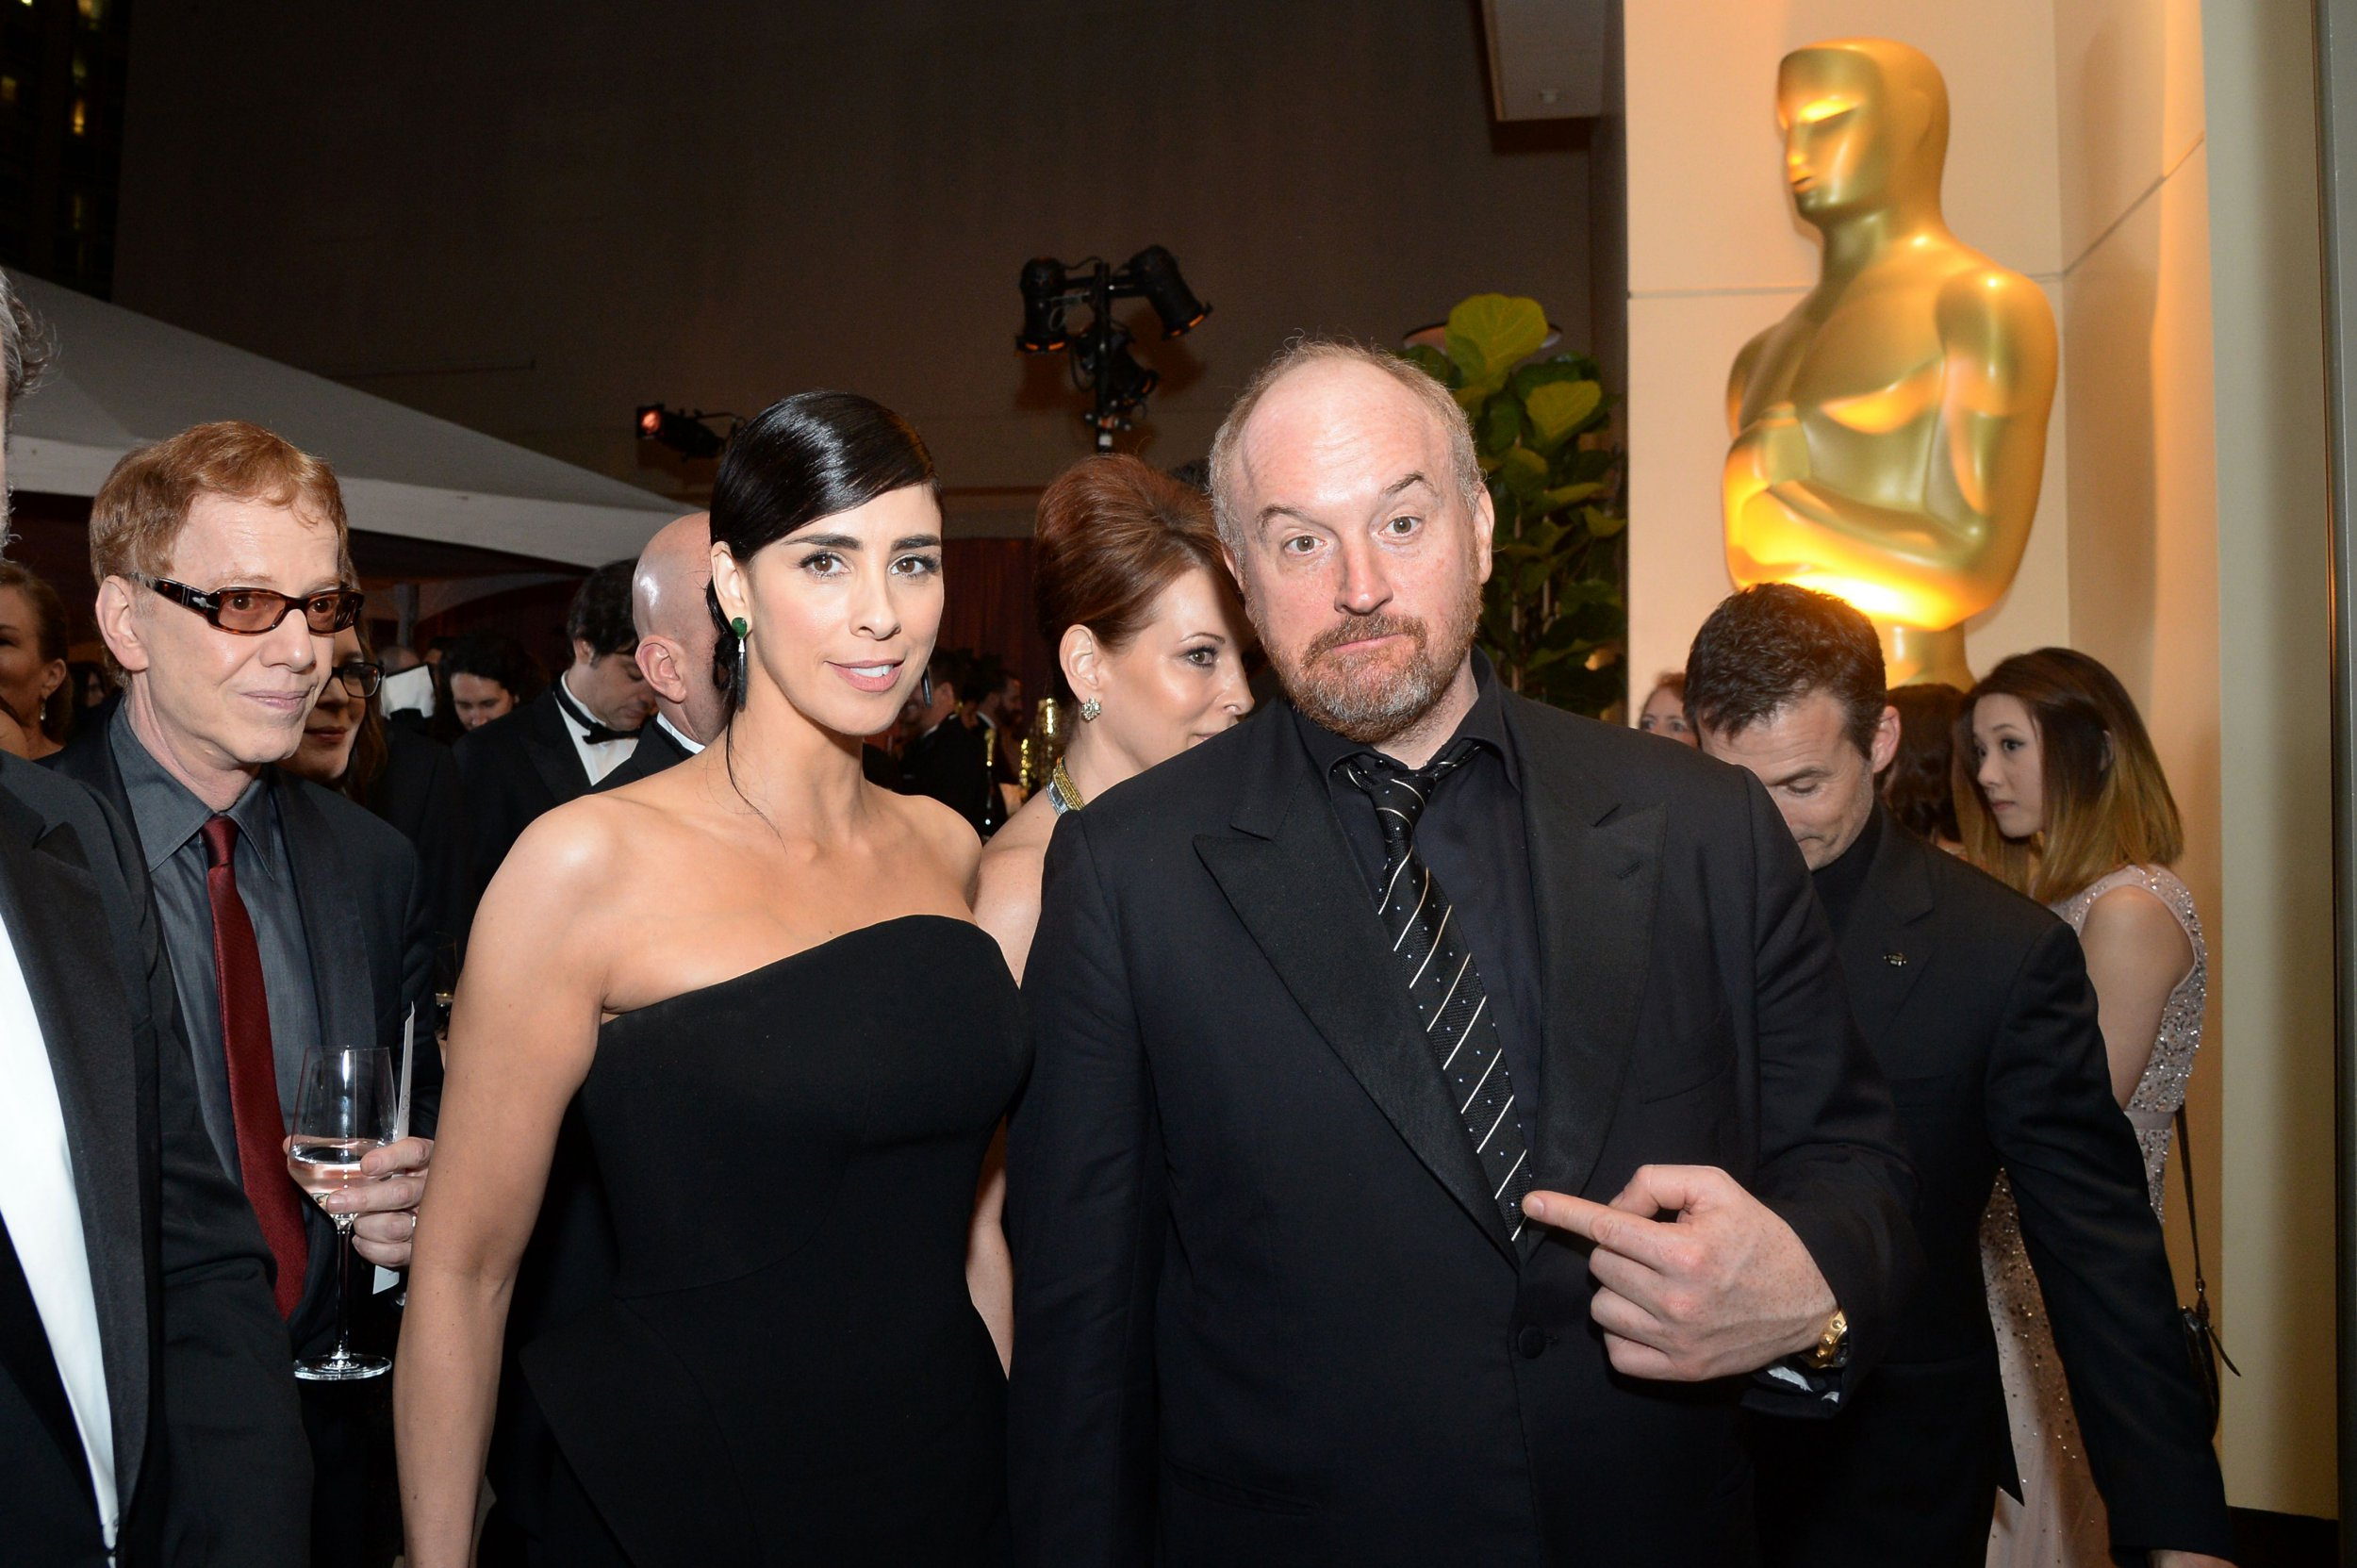 Sarah Silverman is 'angry and sad' over friend Louis C.K. harassment allegations